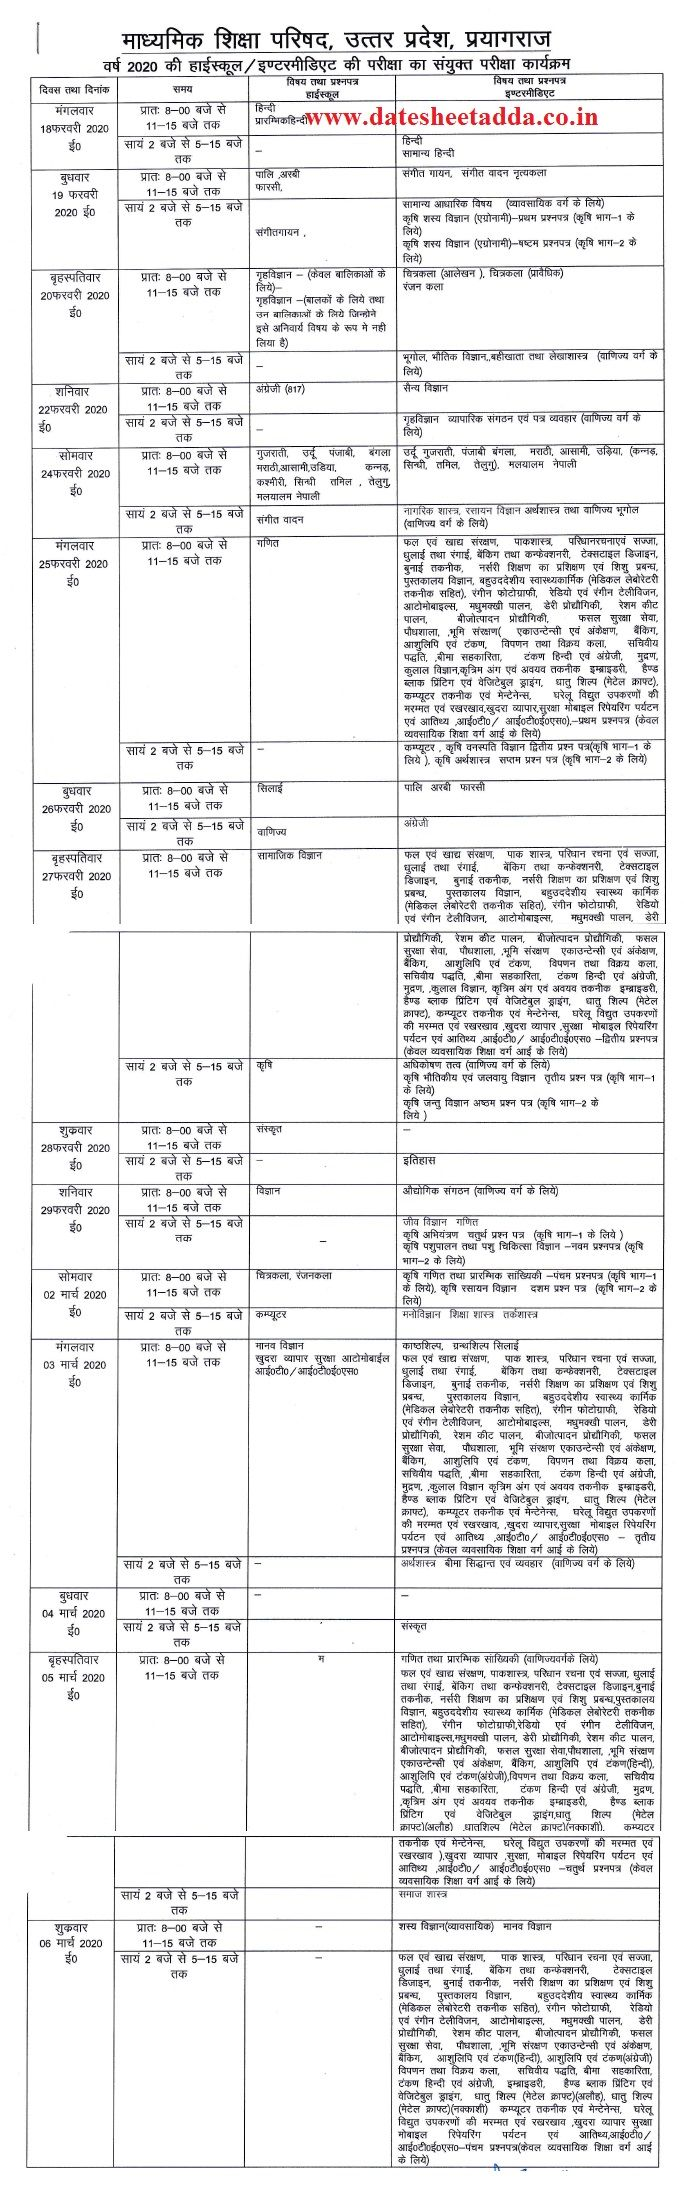 UP Board 10th Date Sheet 2020